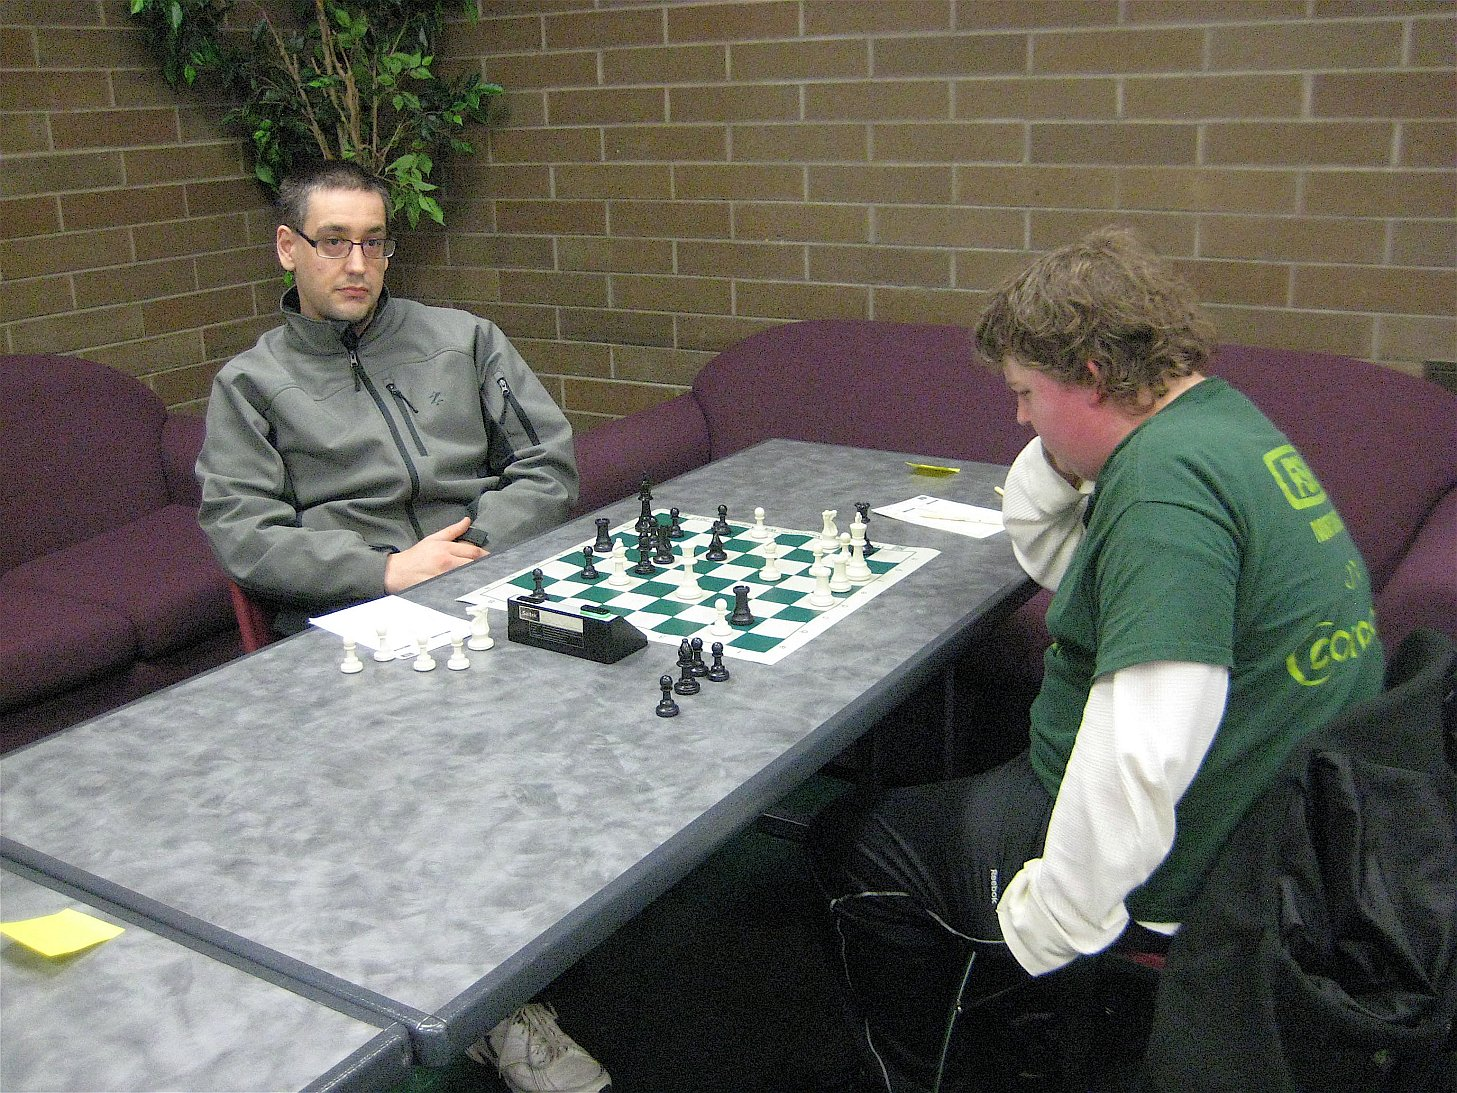 Photo by Brian Berger from 2014 Gresham Open Rd 2.